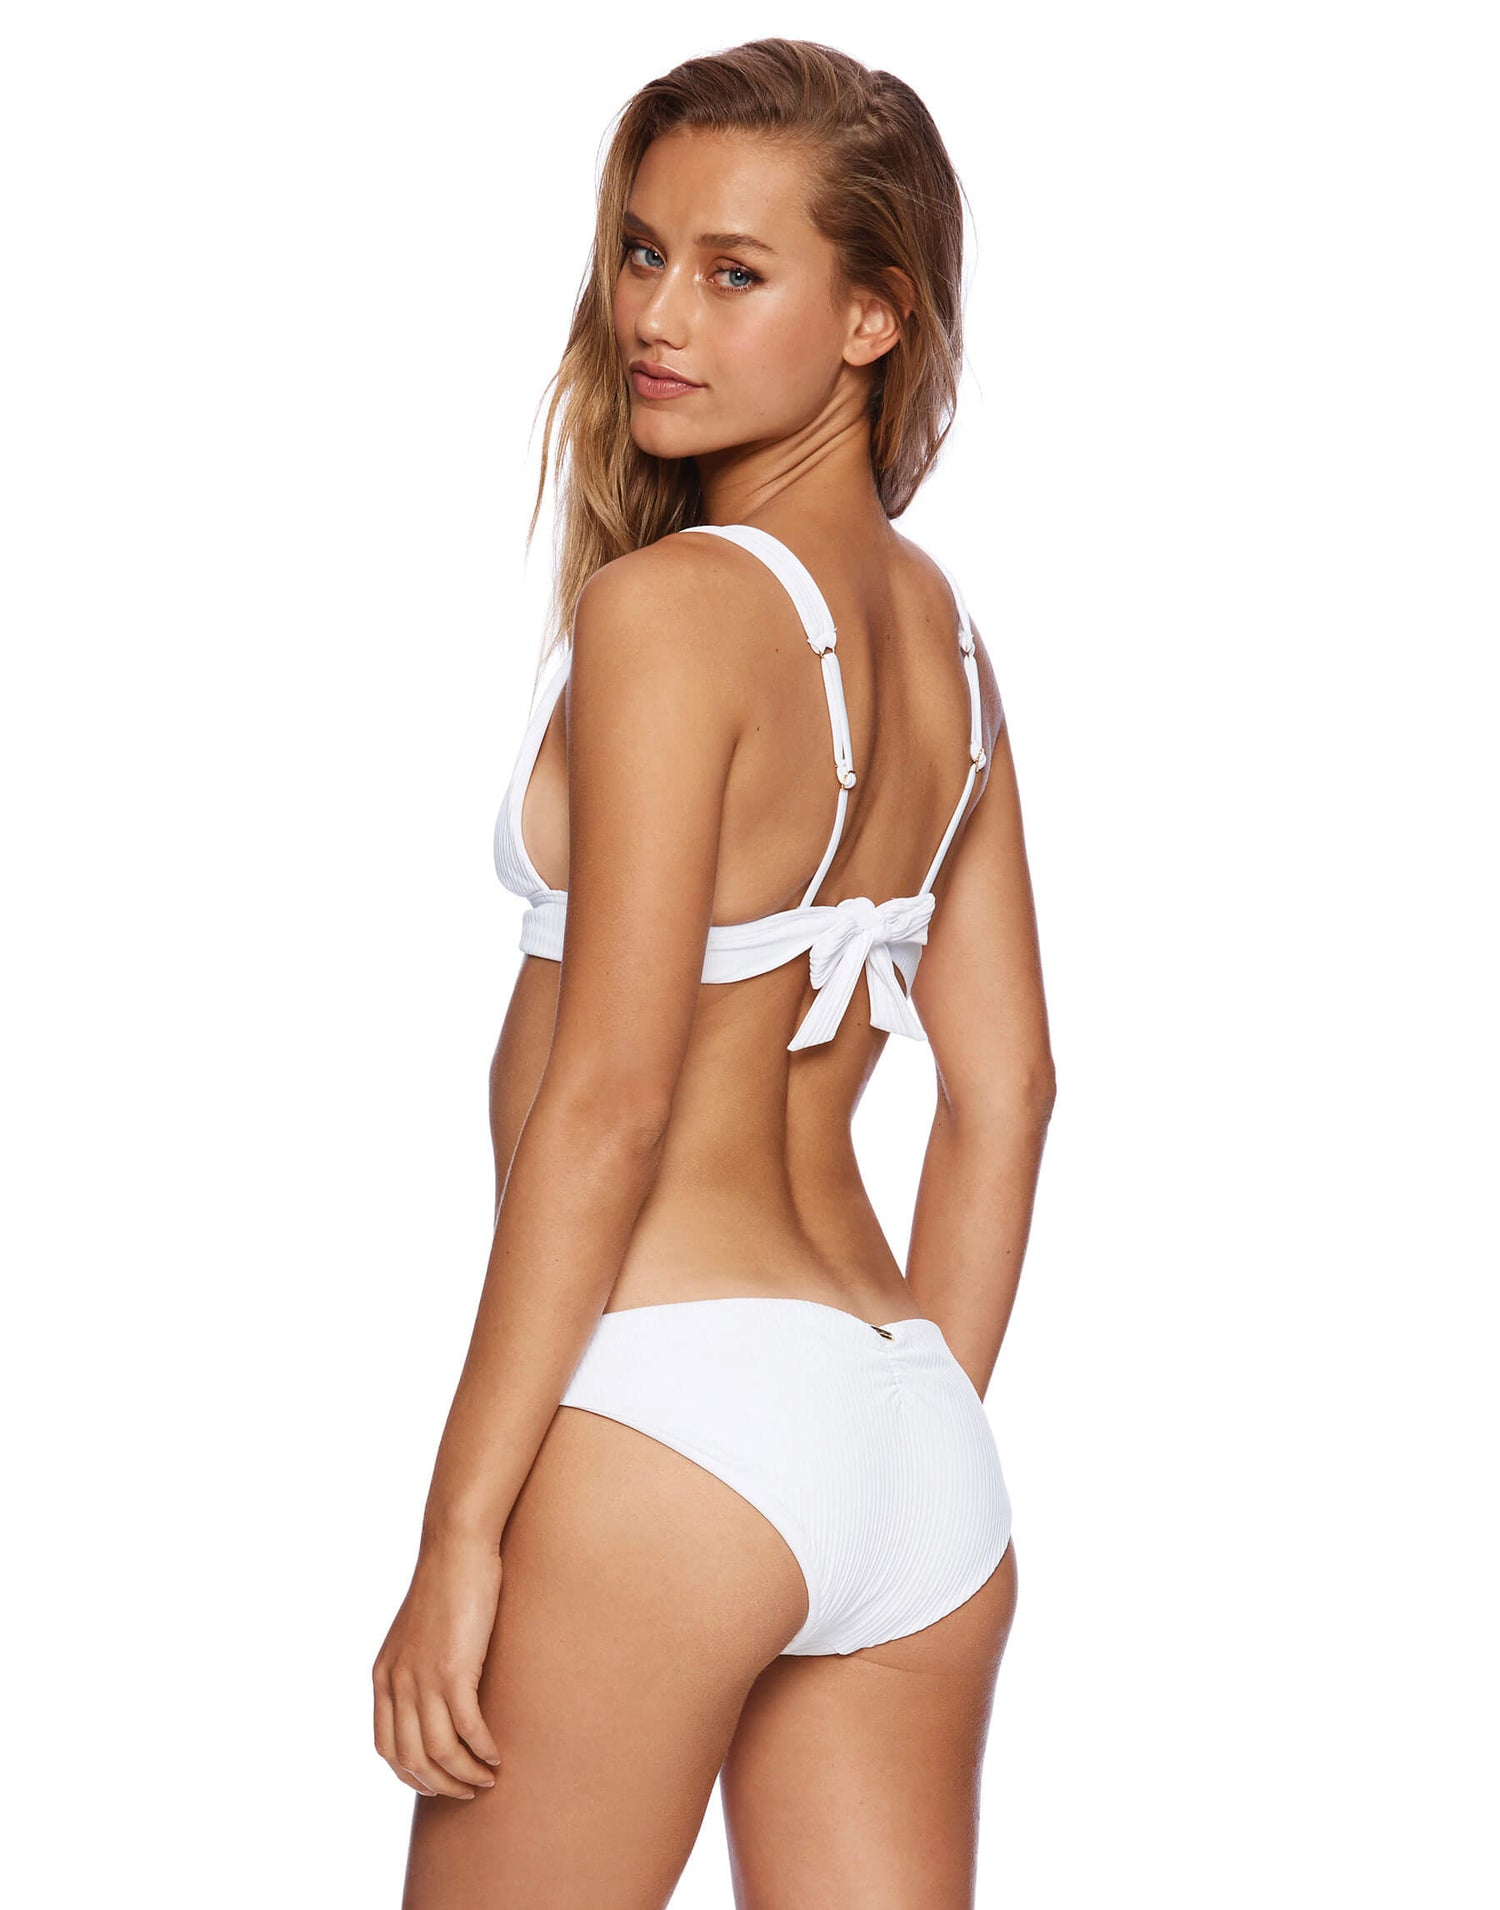 Stephanie Midi Bikini Bottom in White Rib - back view